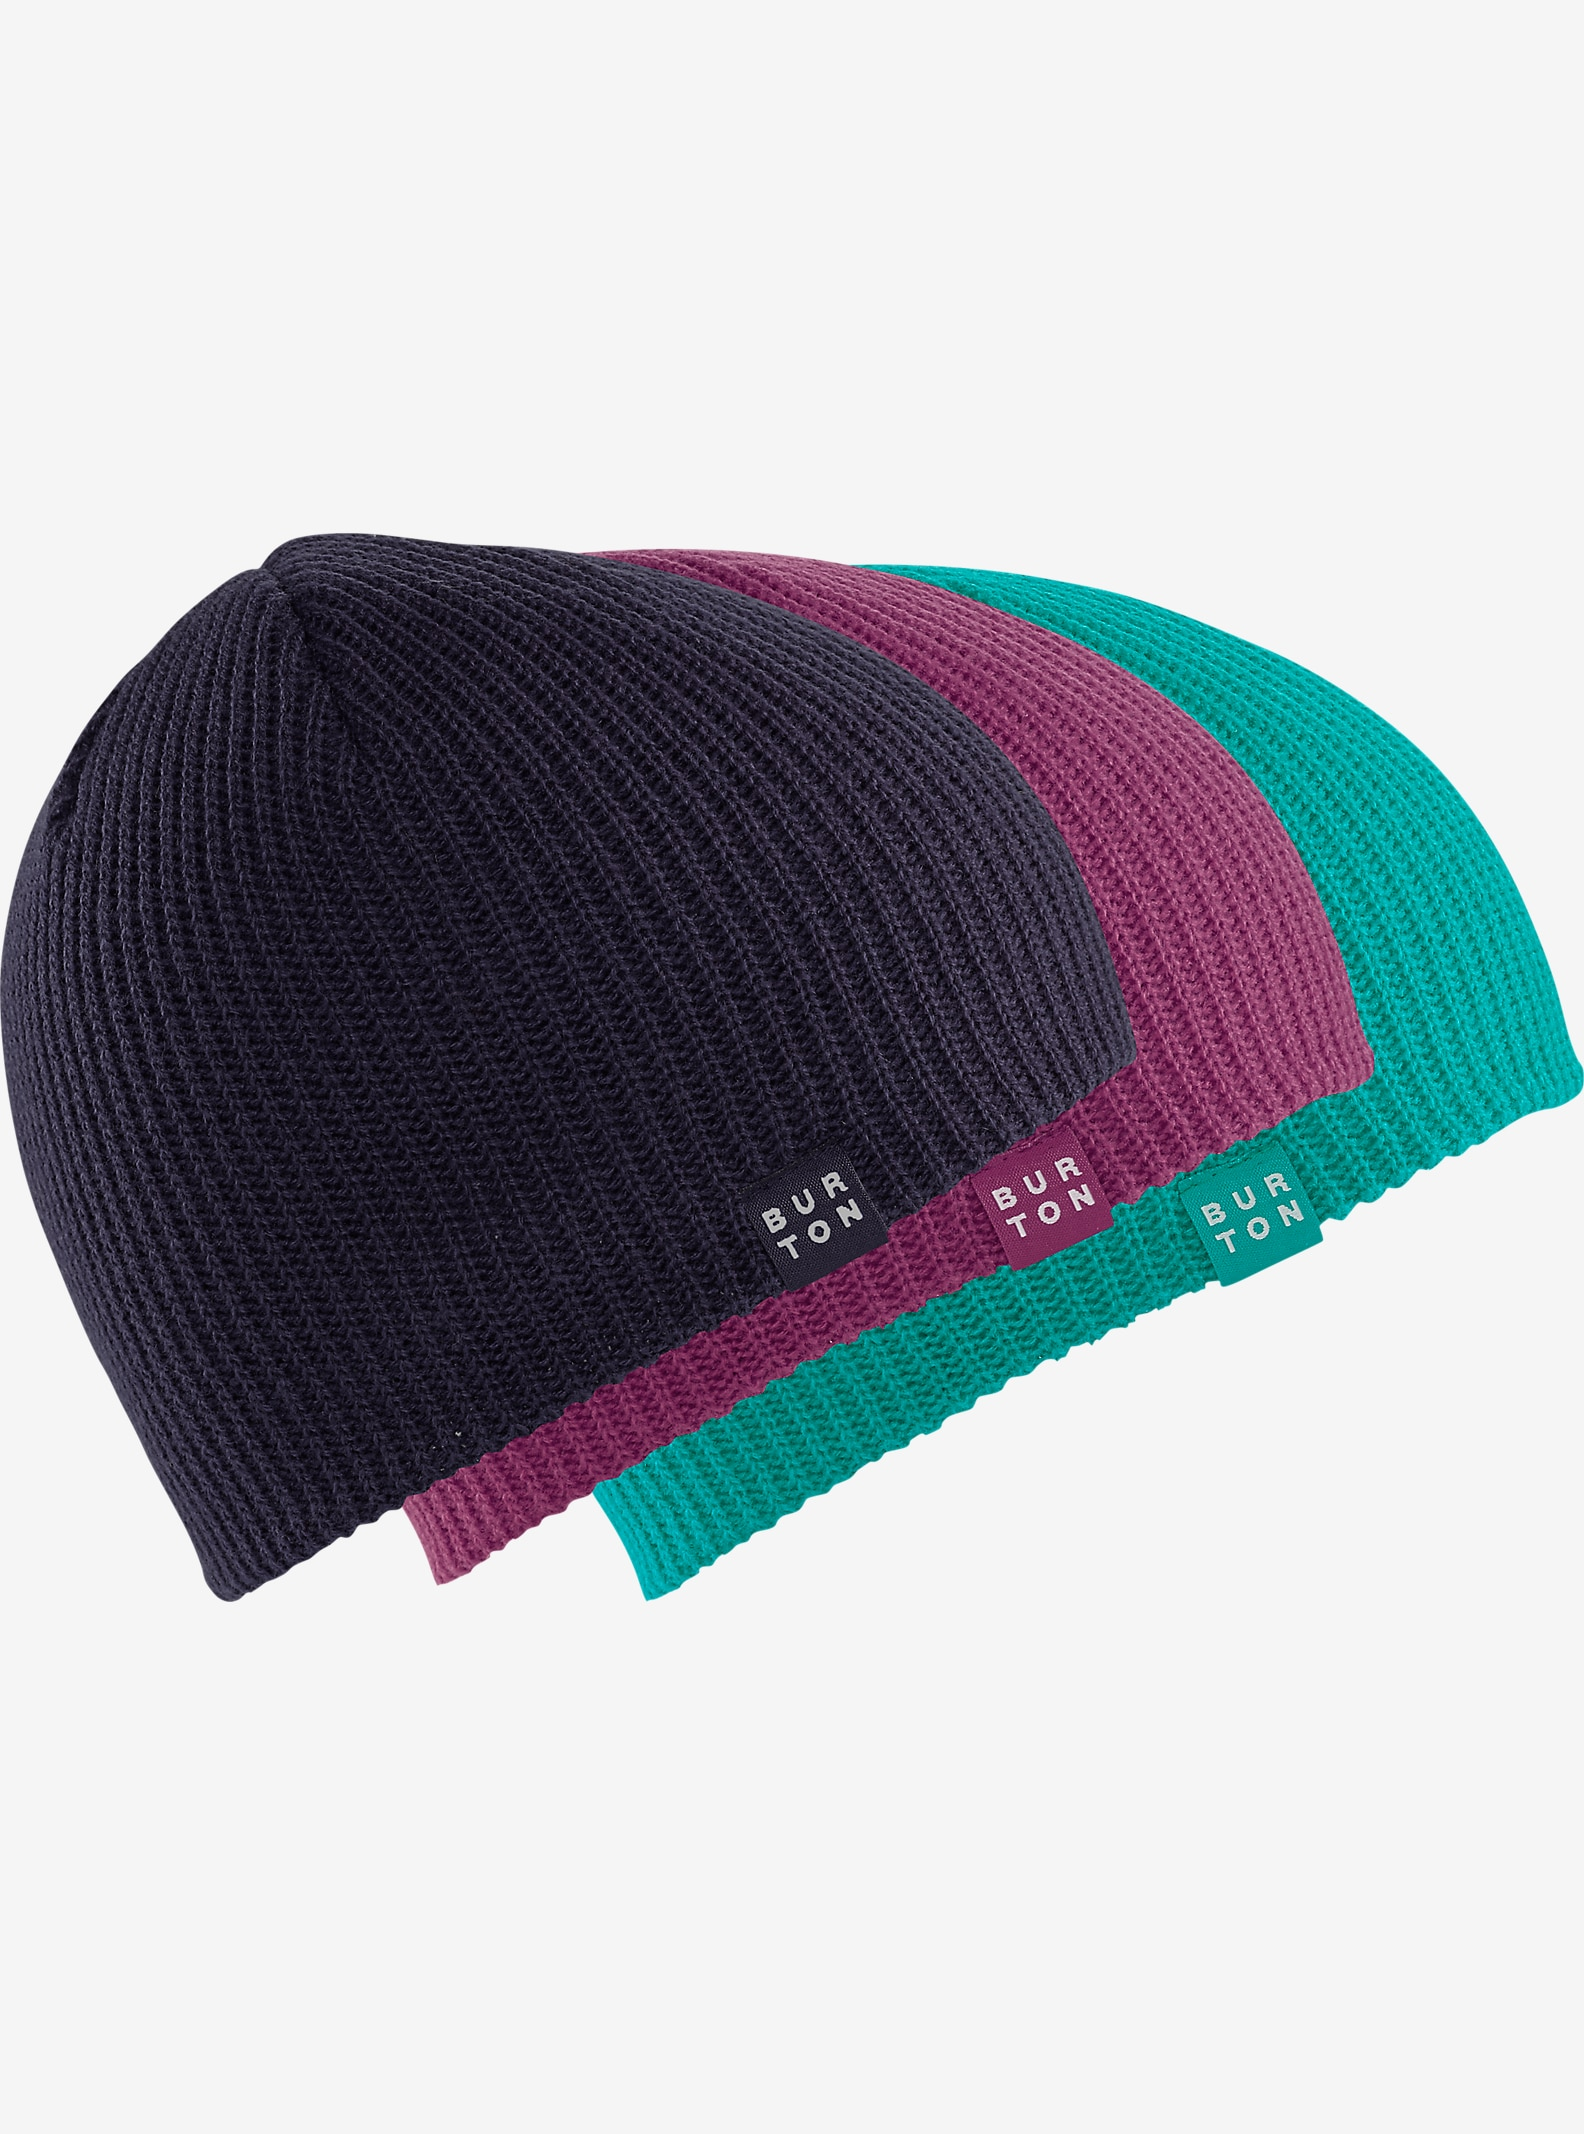 Burton Kids' DND Beanie 3-Pack shown in Spellbound / Grapeseed / Everglade